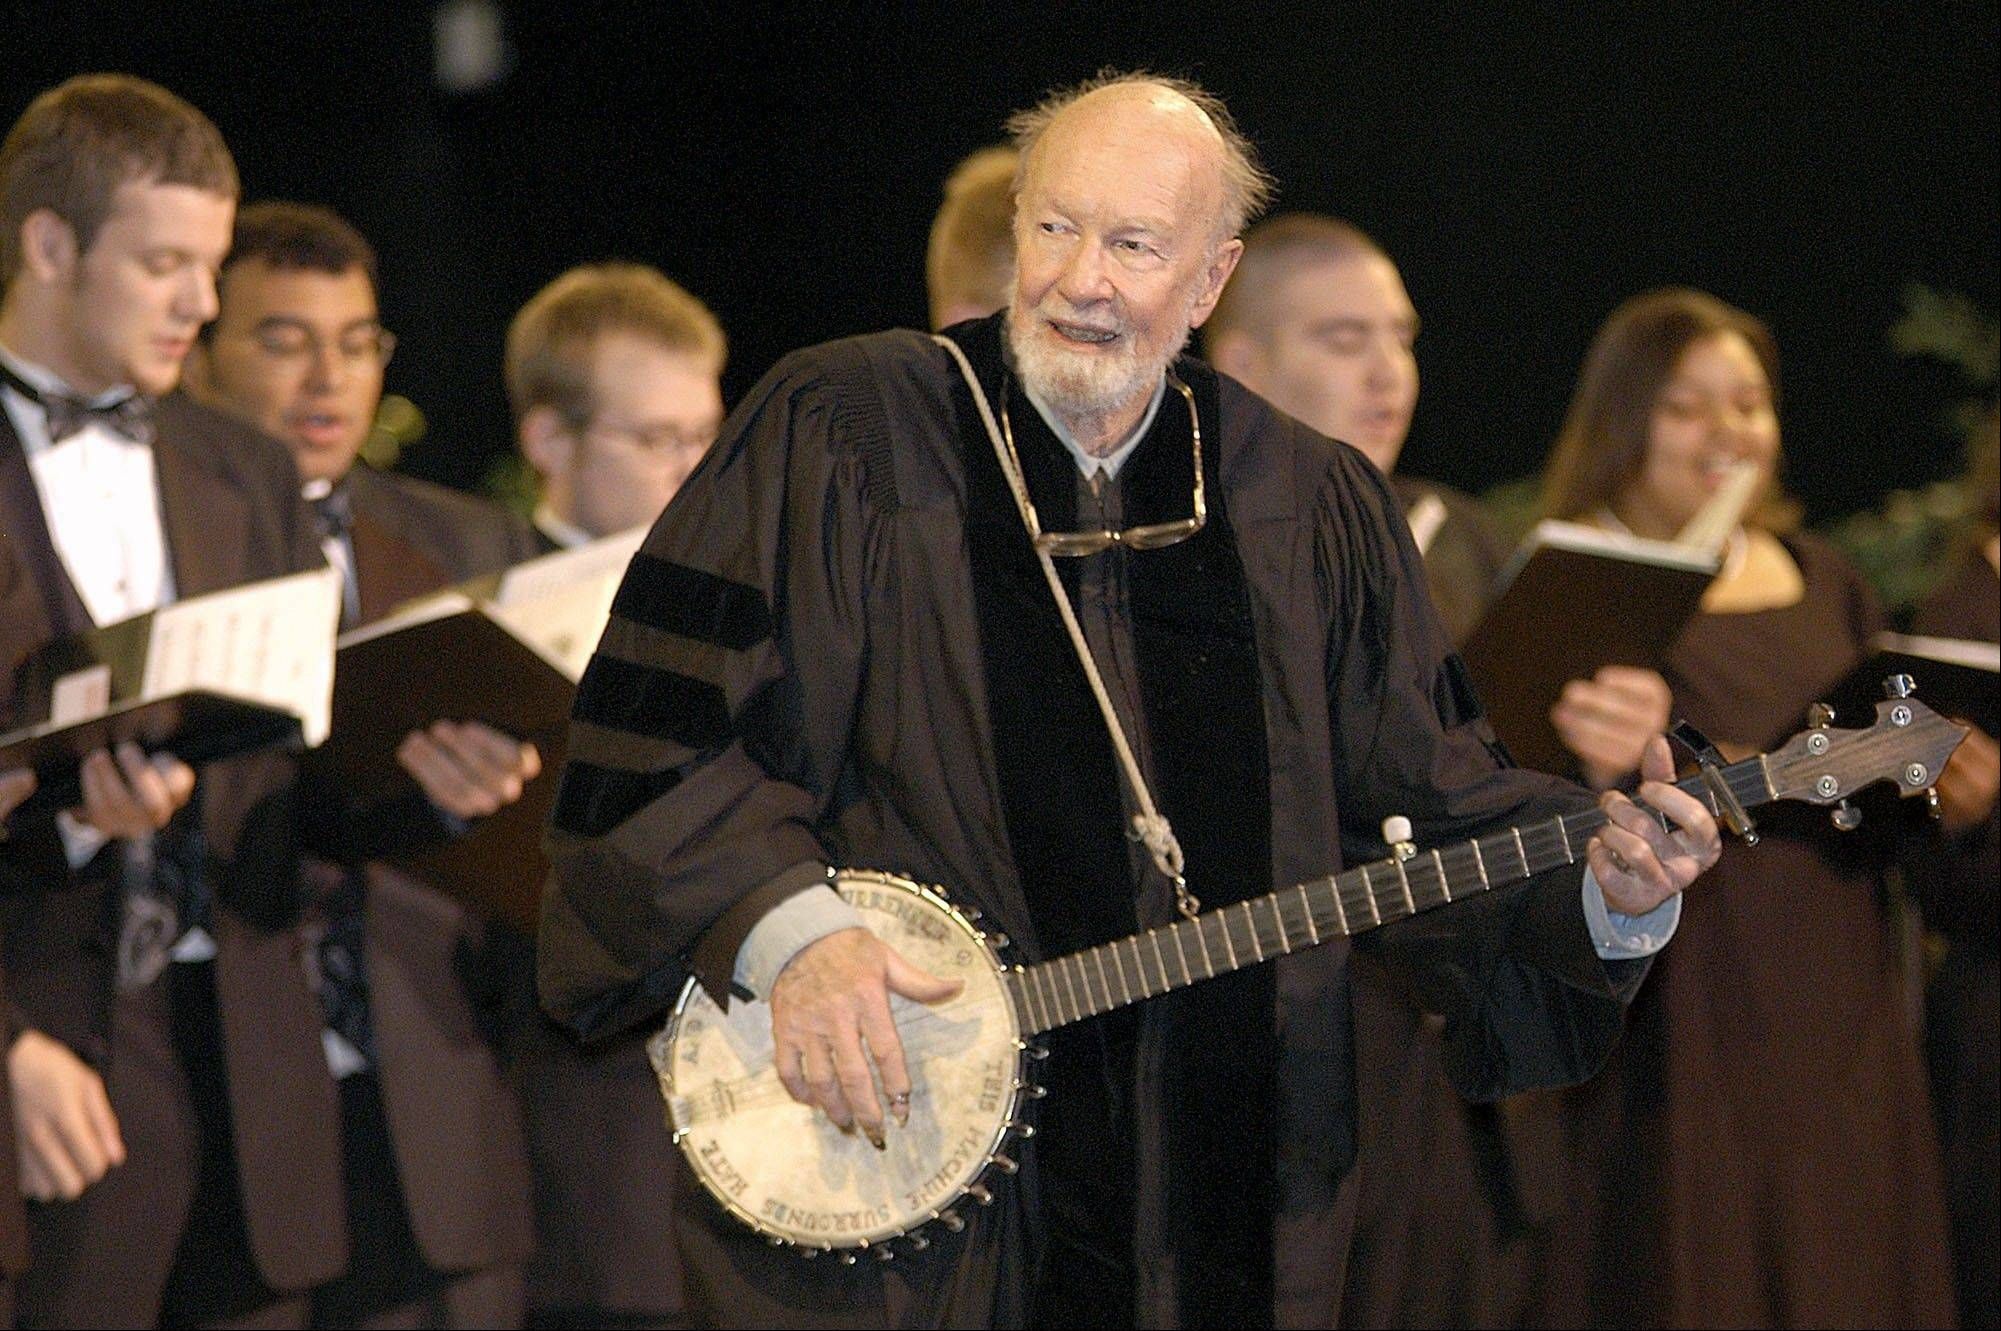 "Folk singer Pete Seeger performed ""When the Saints Go Marching In"" with the Saint Rose Chamber Singers during commencement ceremonies for the College of St. Rose at the Empire State Plaza in Albany, N.Y. in 2003. The American troubadour, folk singer and activist died Monday at age 94."